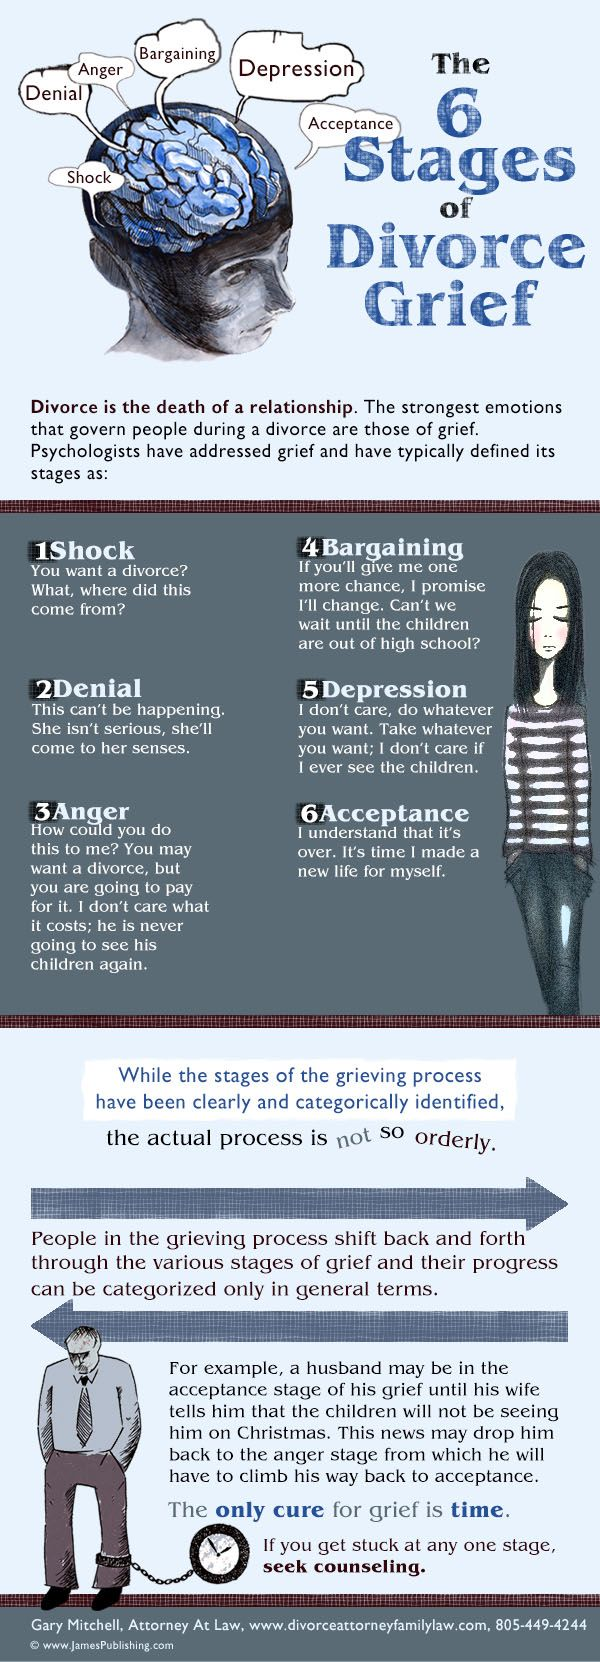 Essay on 5 Stages of Grief